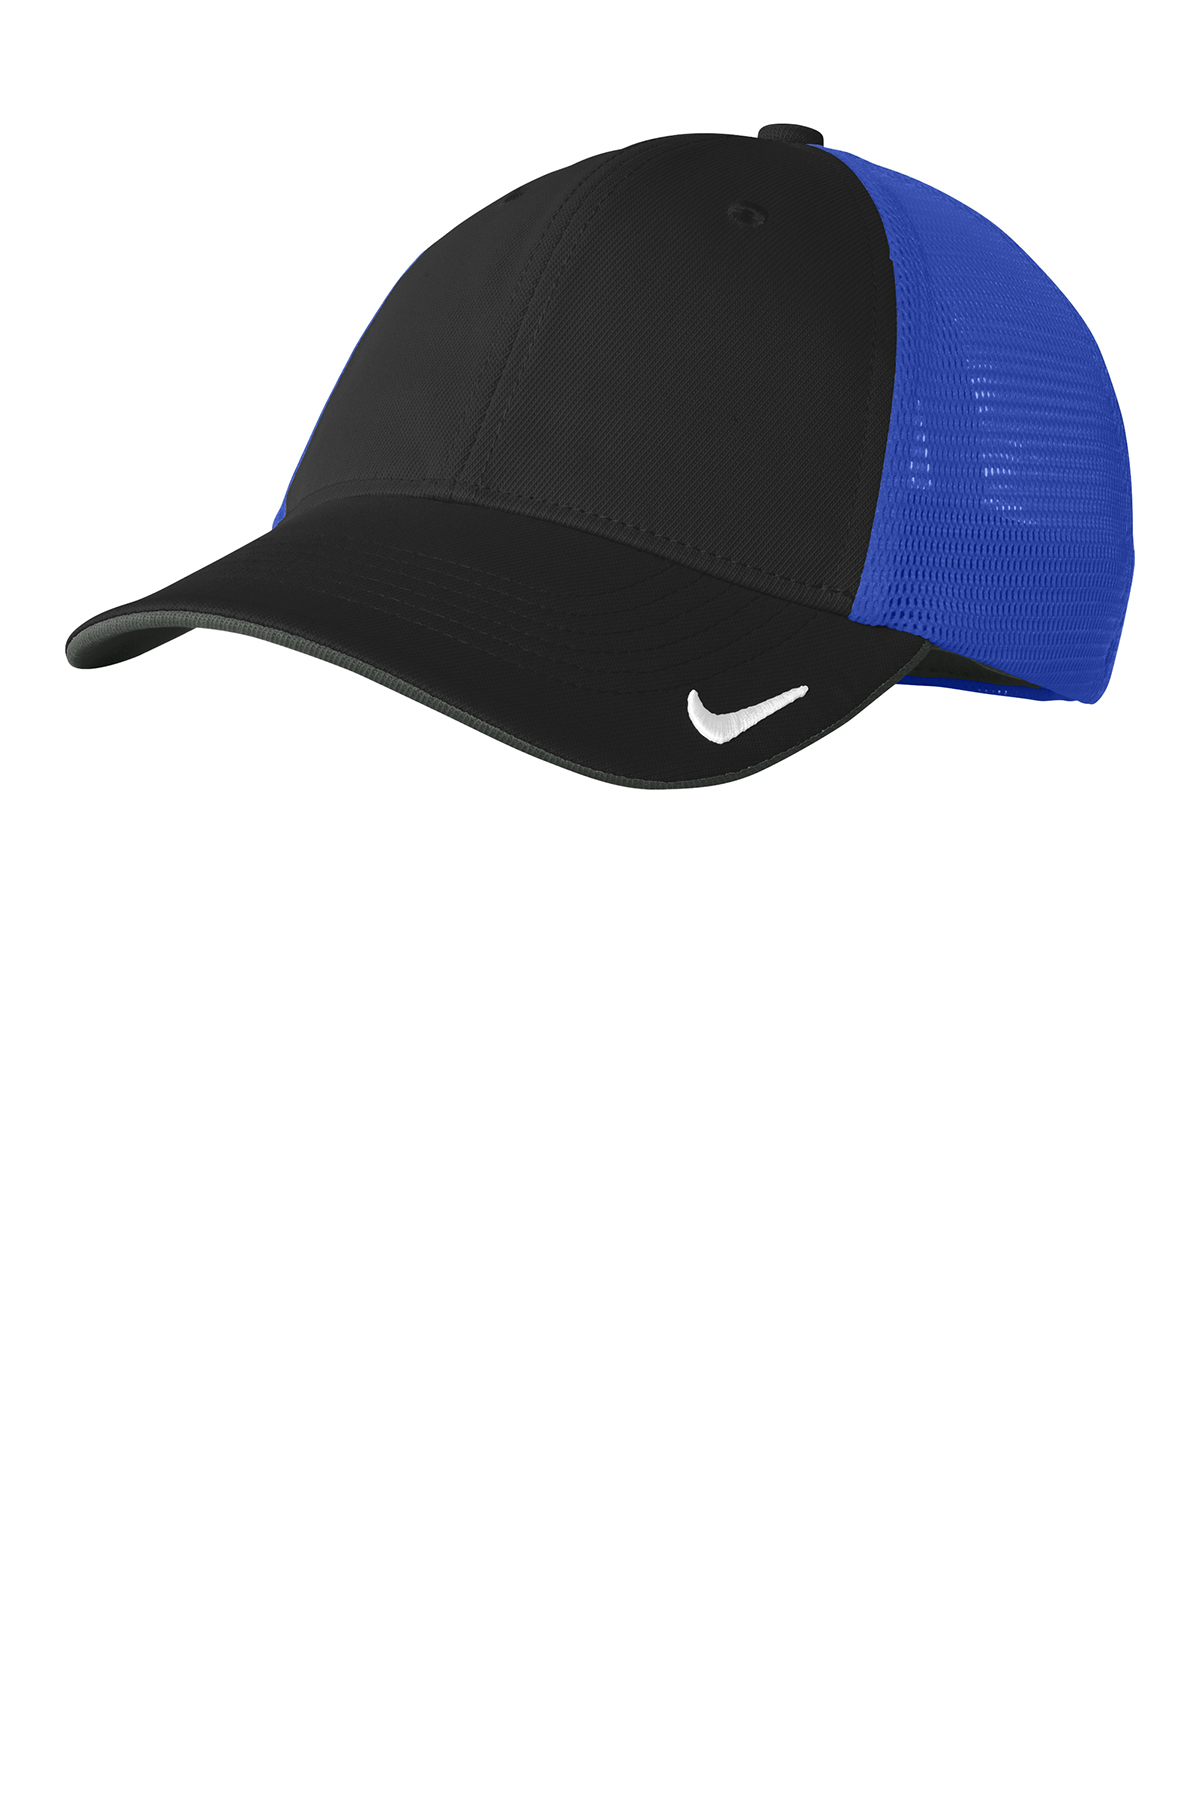 889302 Mesh Back Cap II custom embroidered or printed with your logo. 1af1a286211c